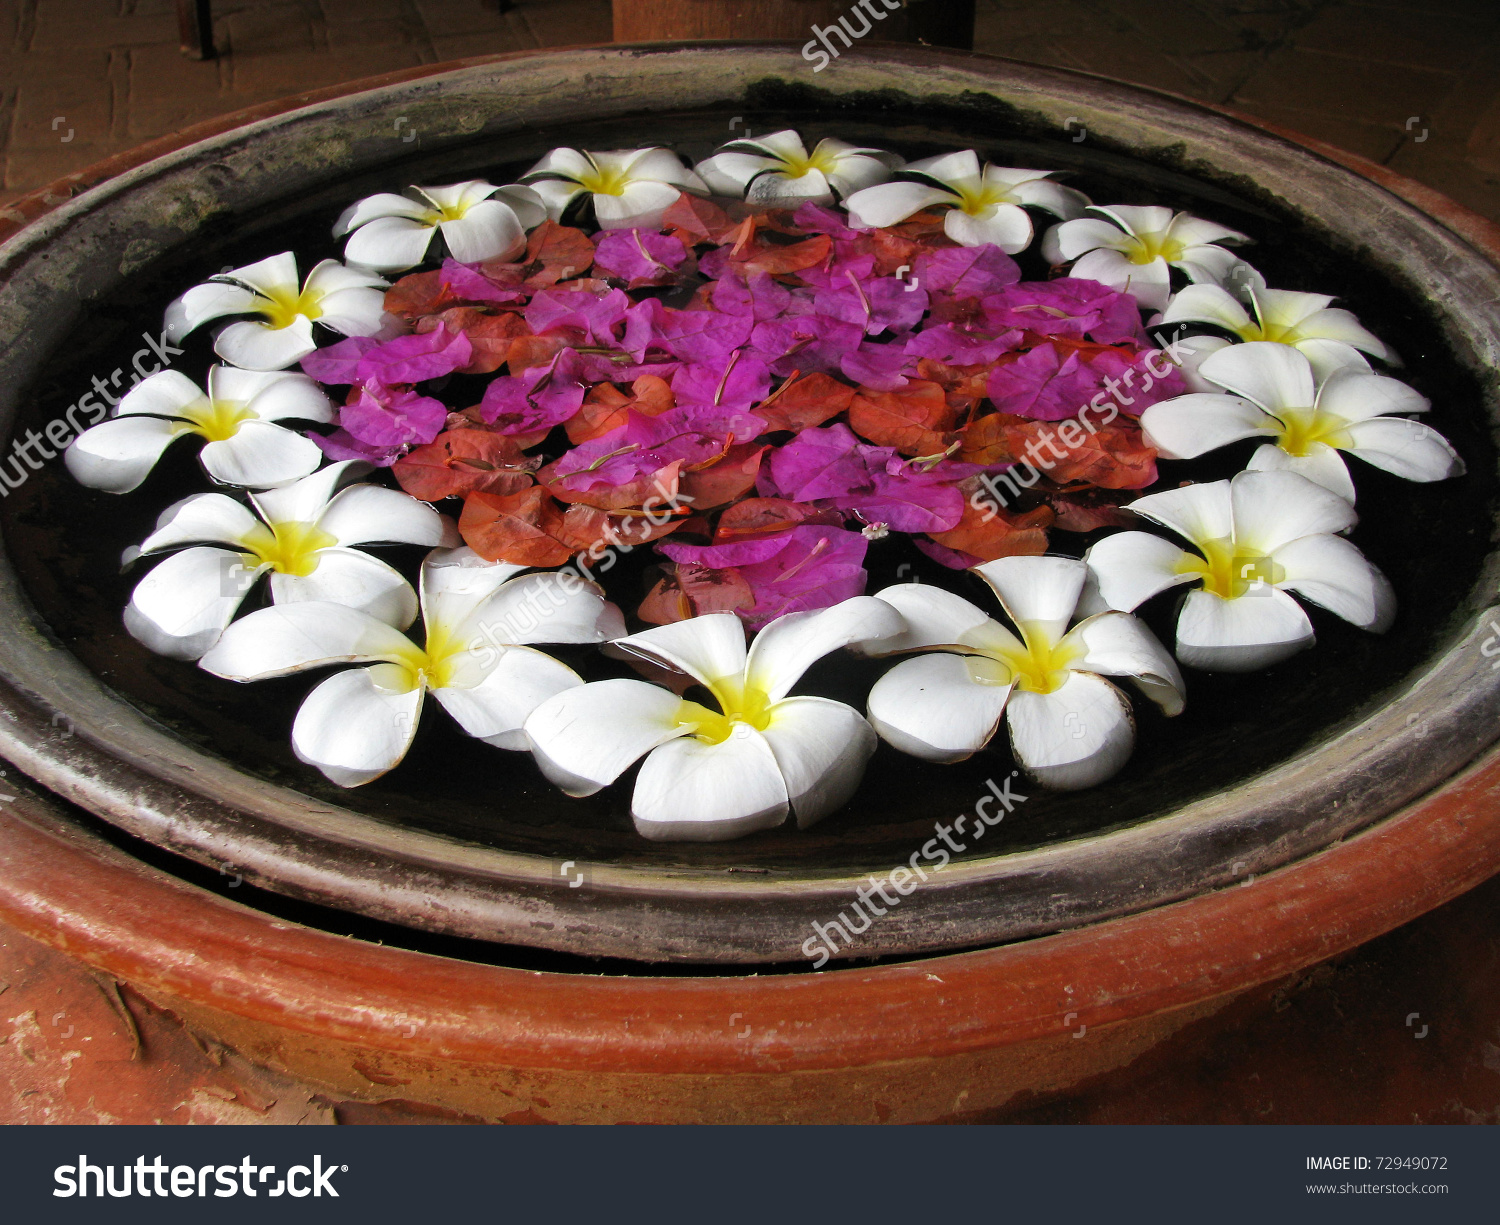 Bali Flowers Floating On Pot Lovely Stock Photo 72949072.